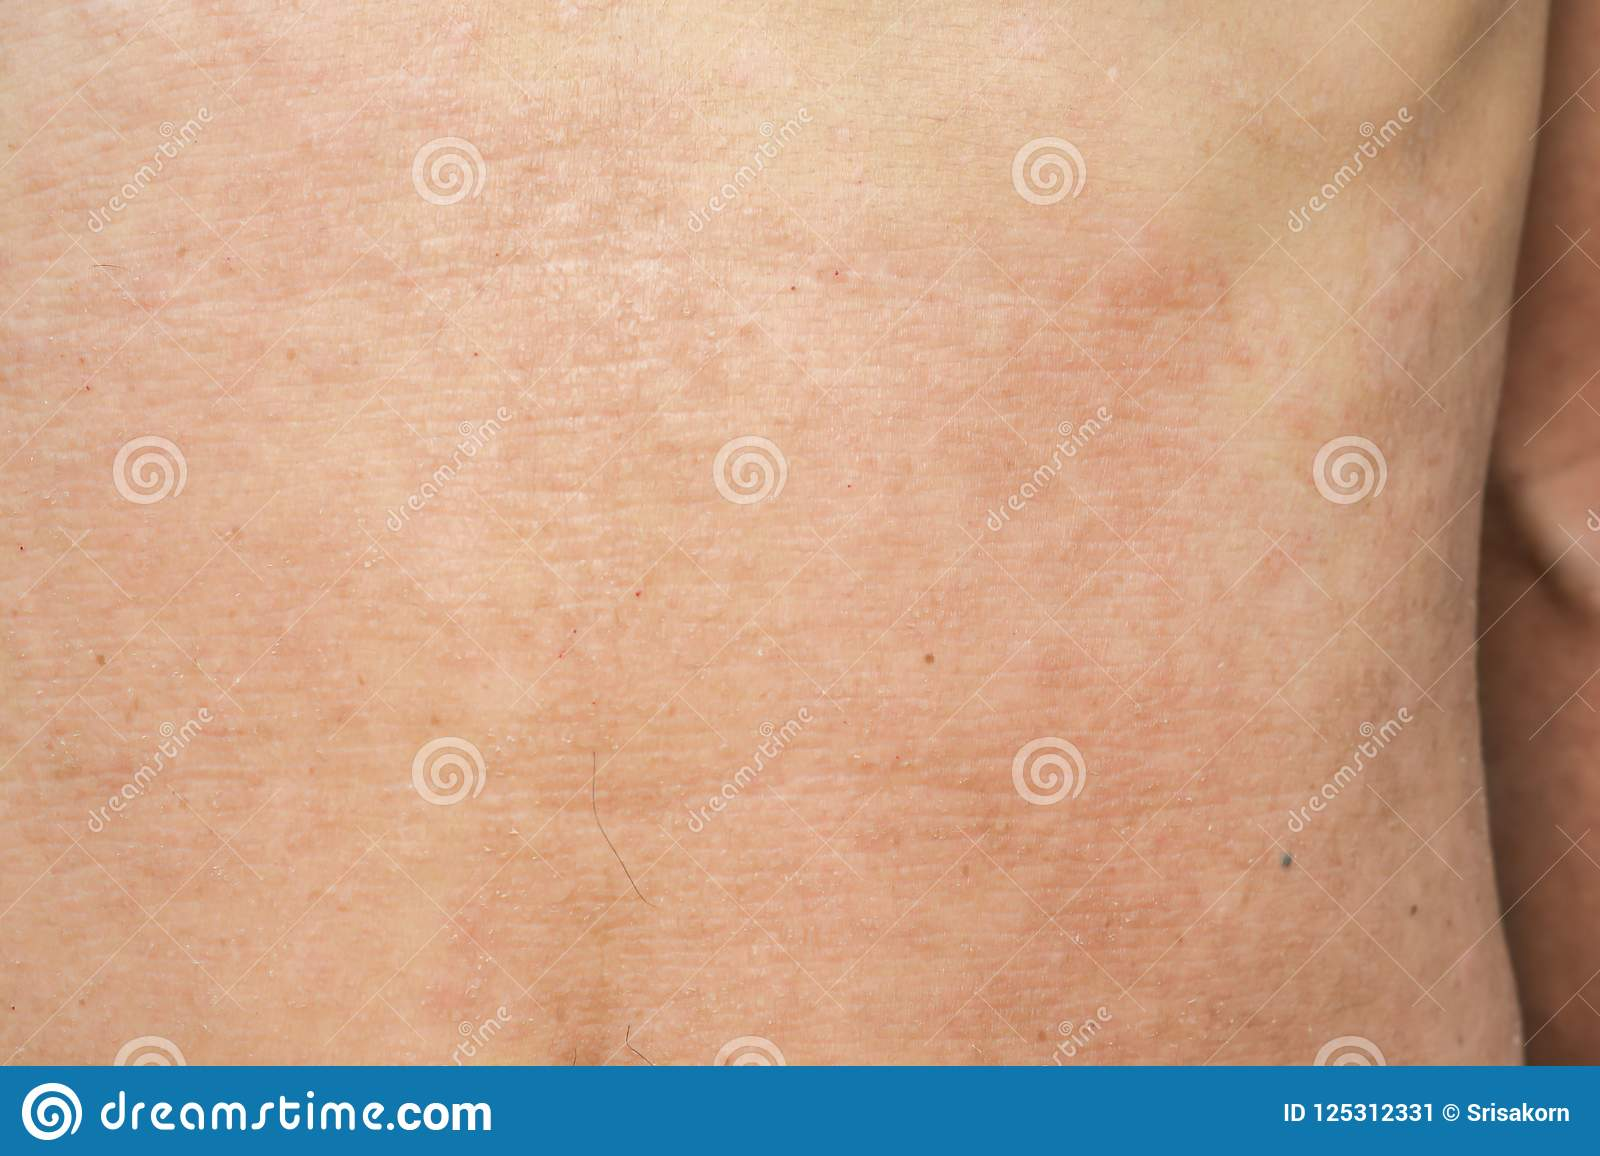 Psoriasis On The Skin Diseases And Conditions Stock Image